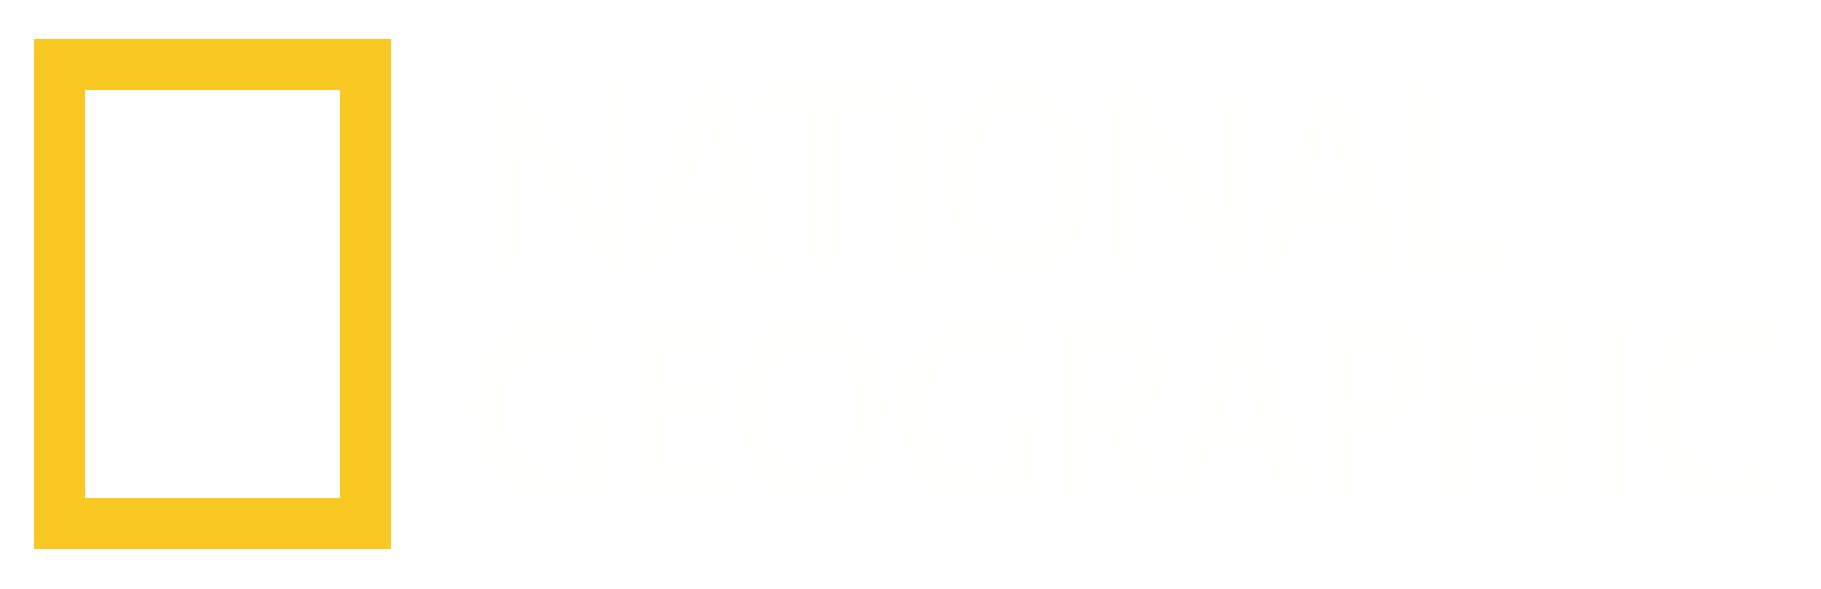 OAS FCU and National Geographic logo combination